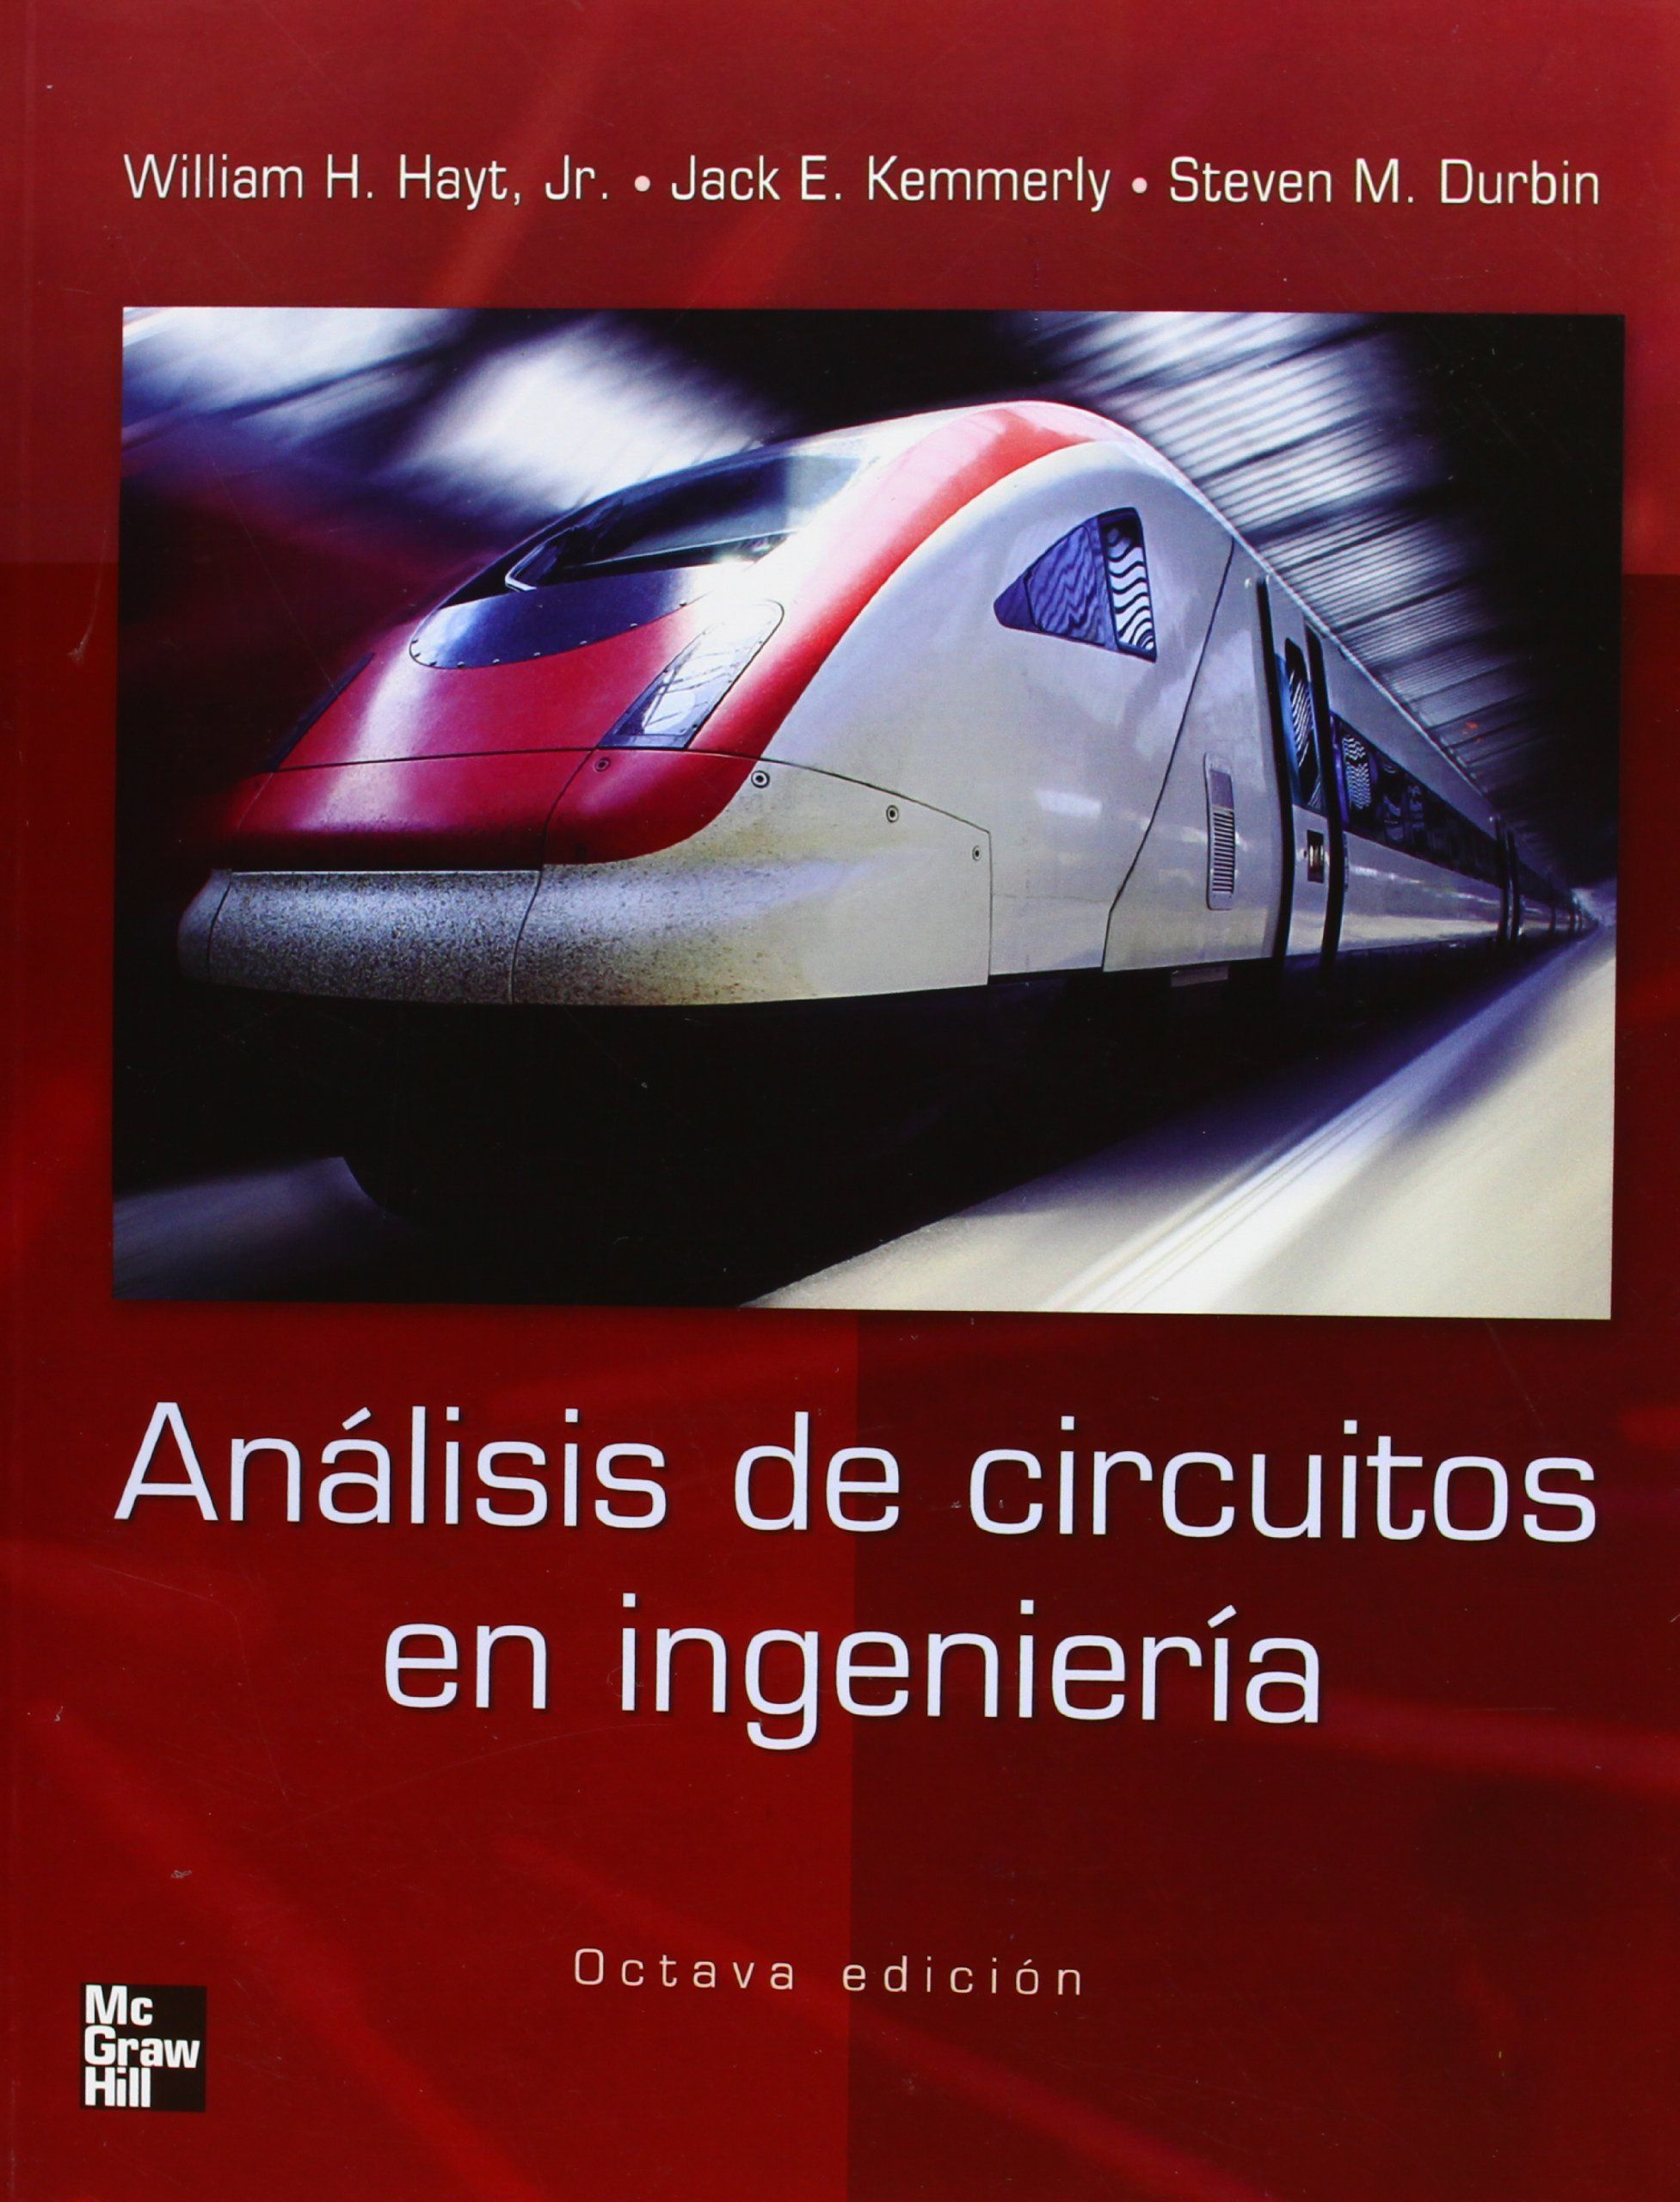 Análisis de circuitos en ingeniería / William H. Hayt . 2012.